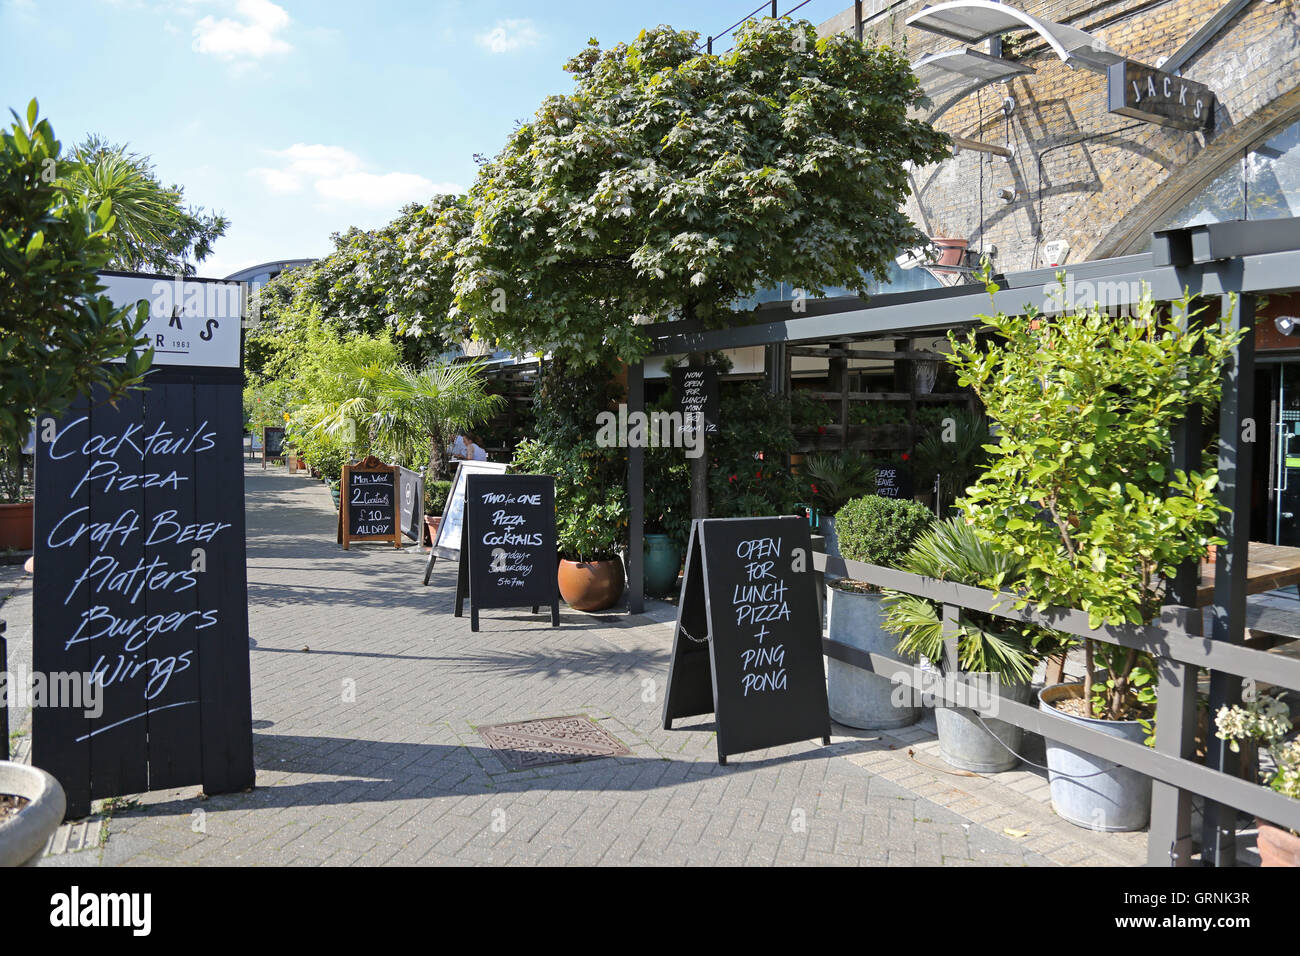 Blackboards outside restaurants on London's Isabella Street. Built underneath railway arches, the street is - Stock Image